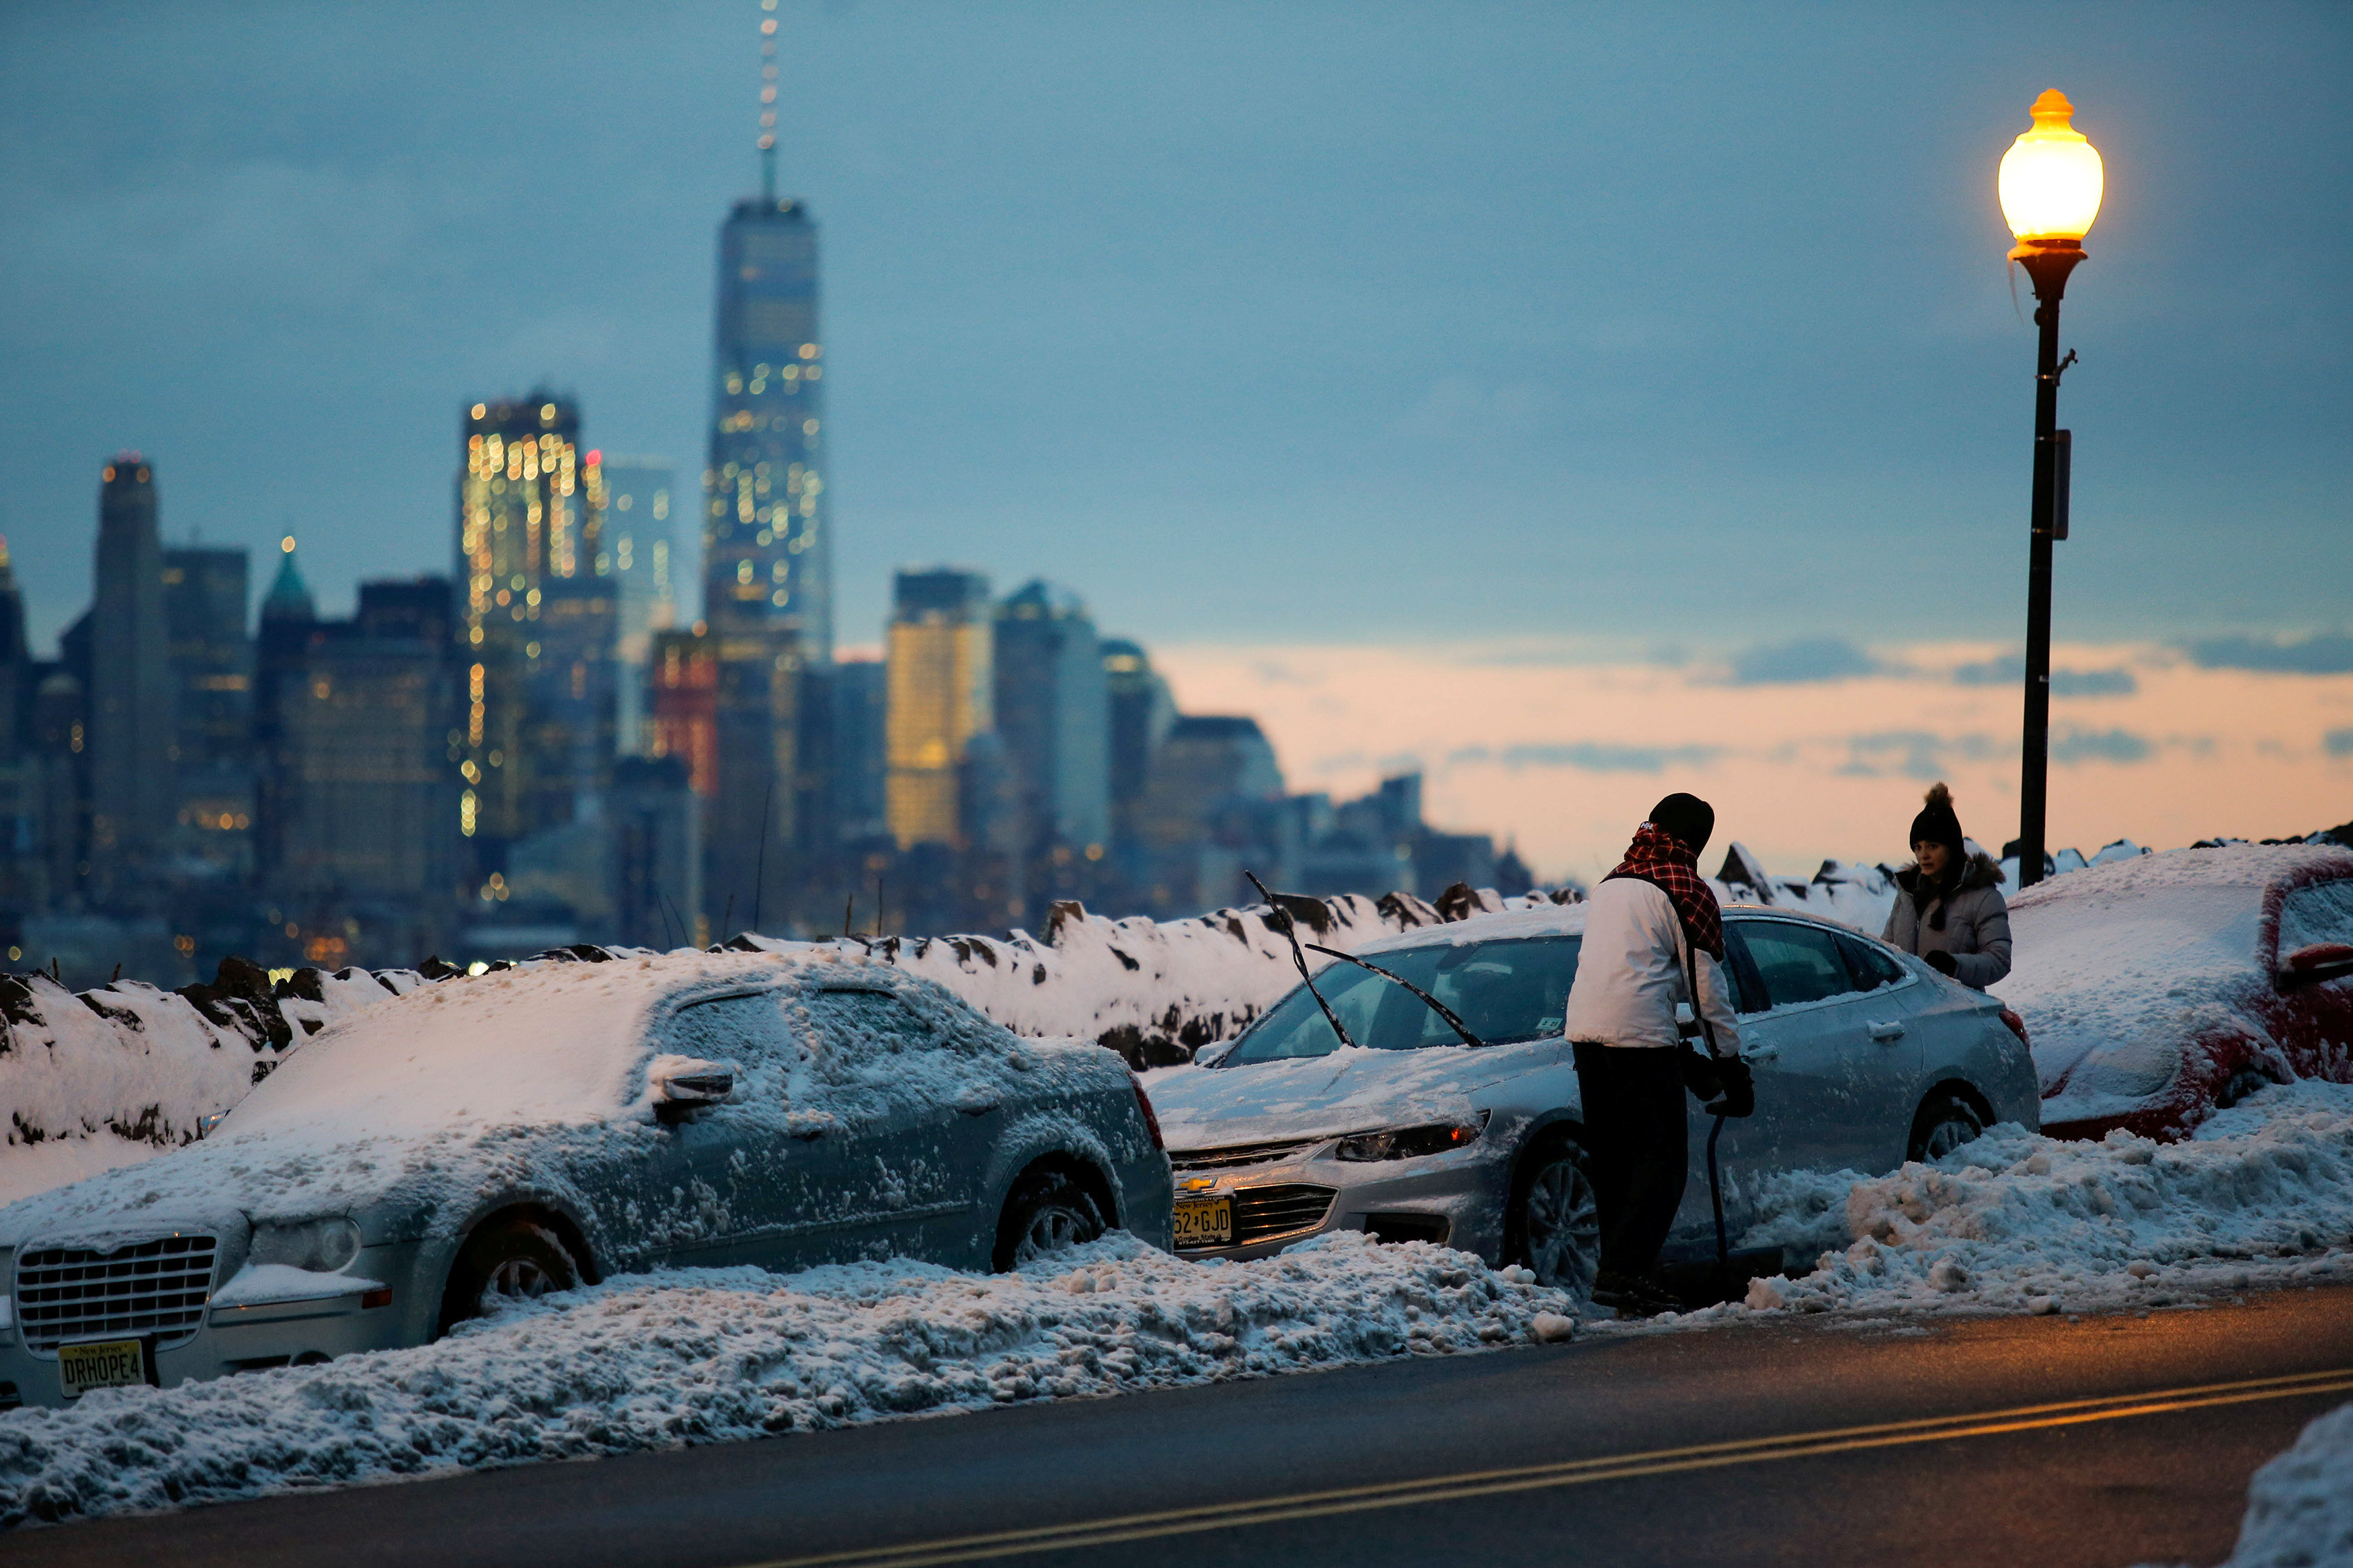 Residents clear their cars and street of snow in Weehawken, New Jersey, as the One World Trade Center and lower Manhattan are seen after a snowstorm in New York, U.S. March 14, 2017. REUTERS/Eduardo Munoz